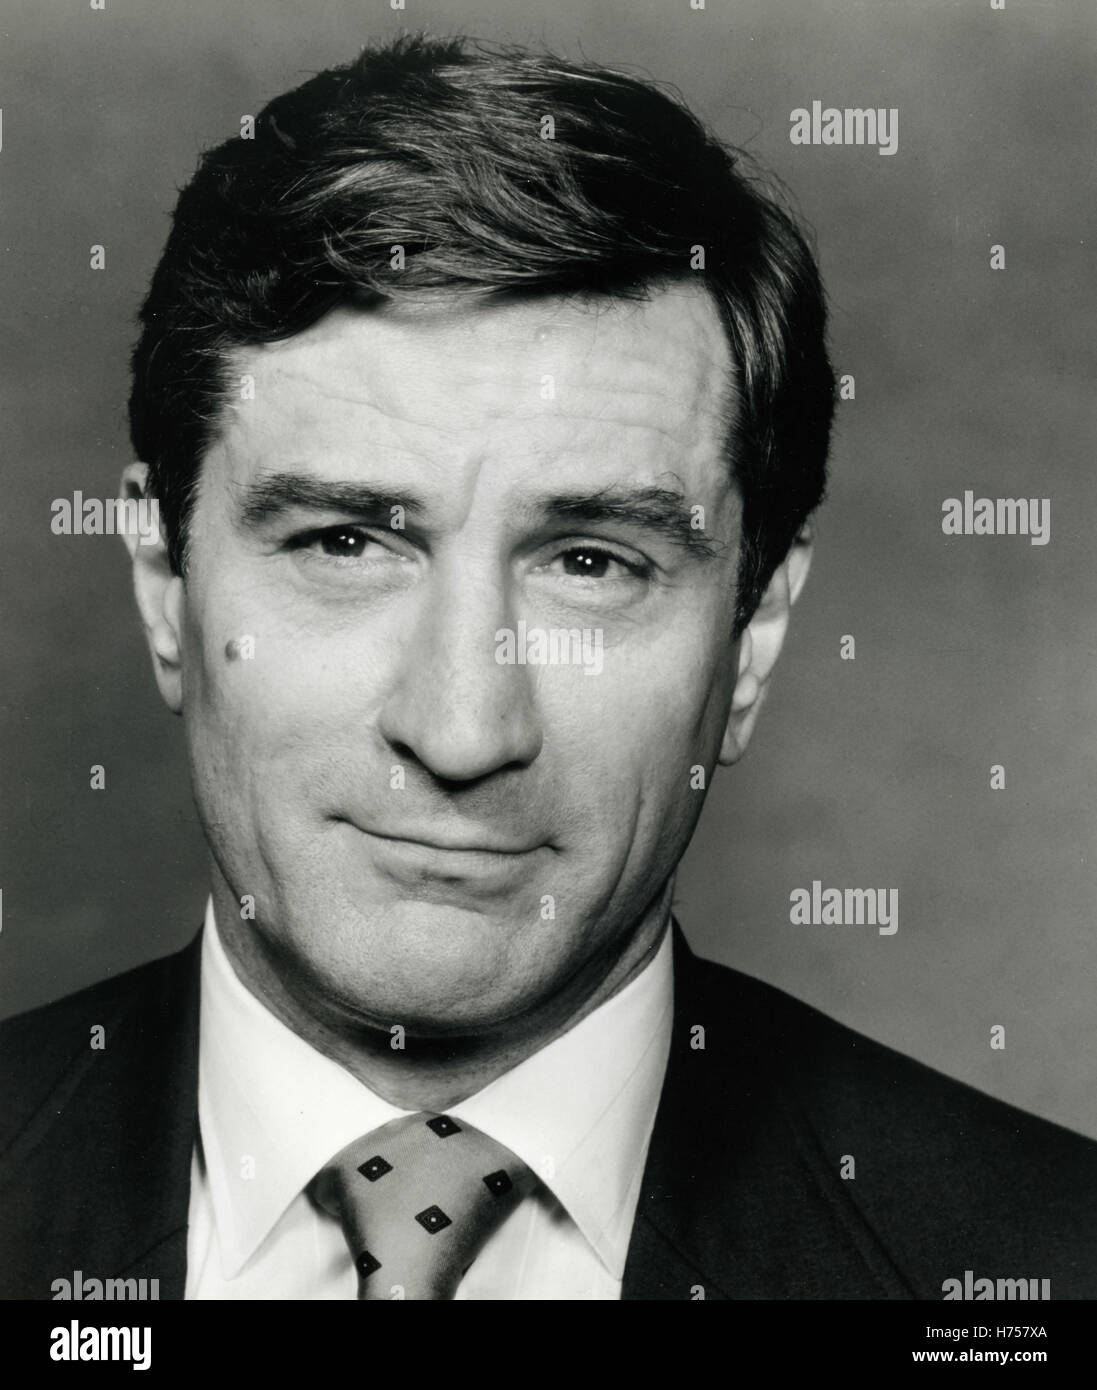 American actor Robert De Niro in the film Mad Dod and Glory, USA 1992 - Stock Image